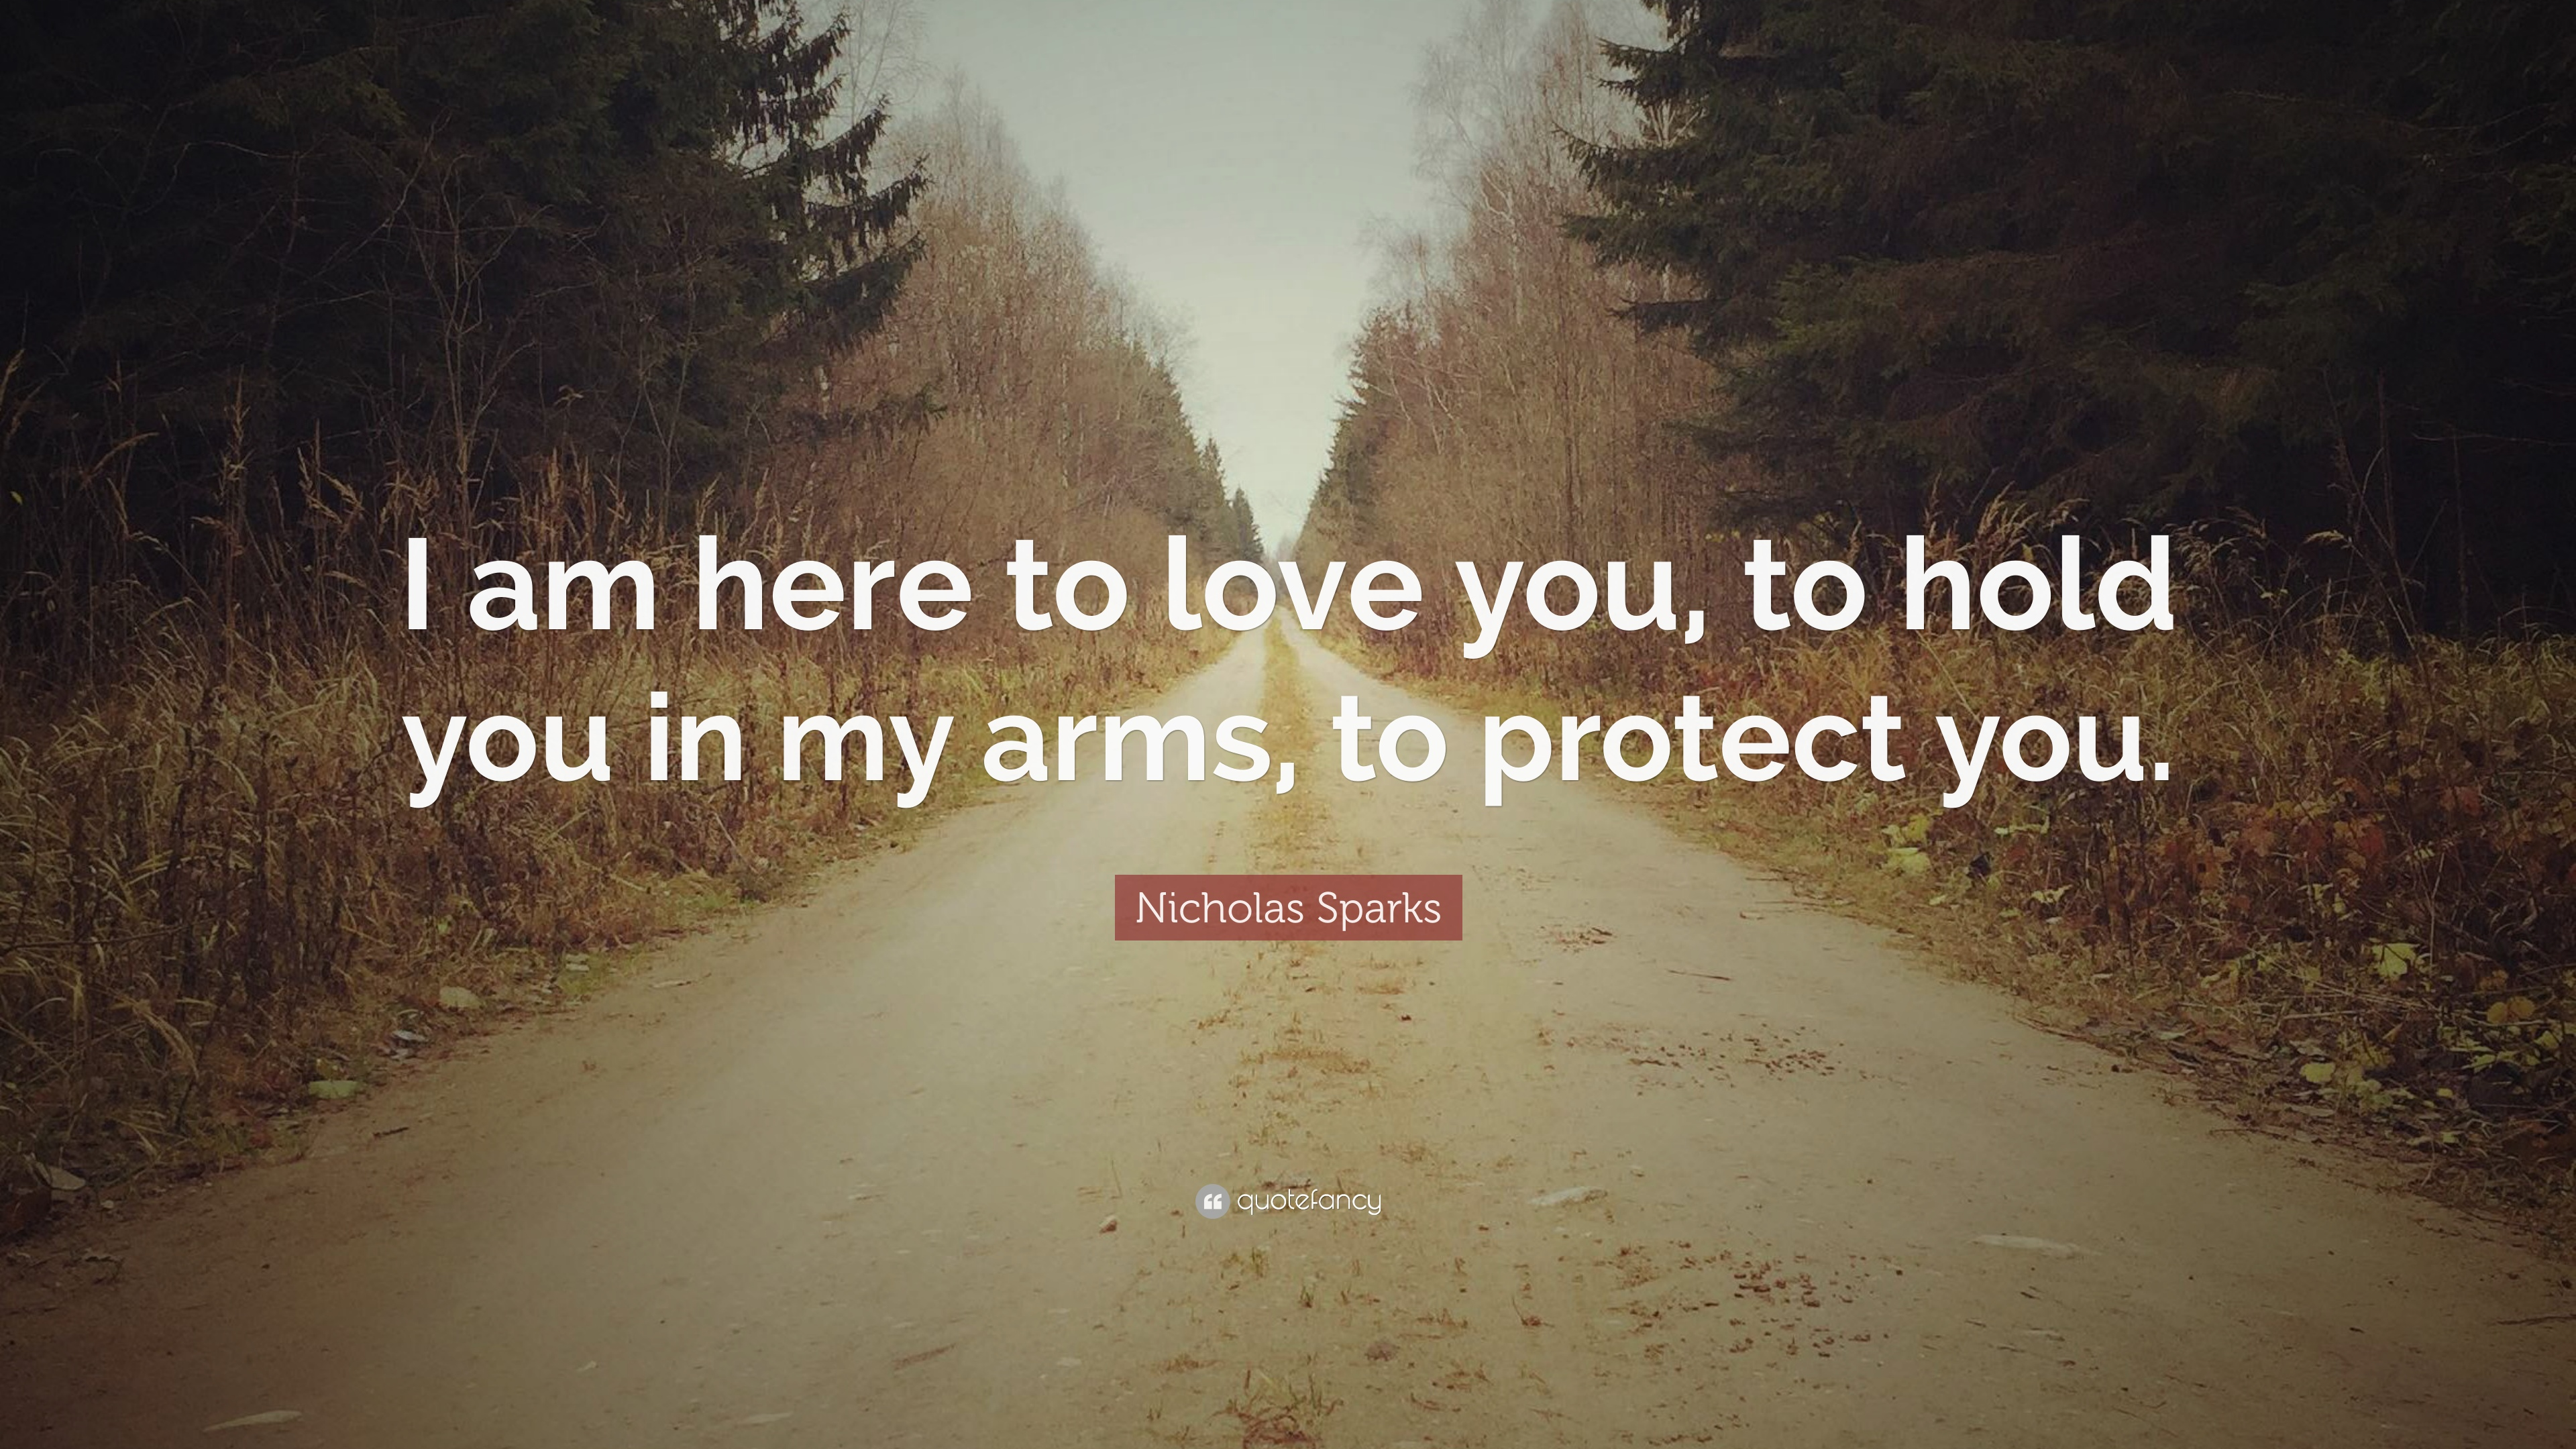 Nicholas Sparks Quote I Am Here To Love You To Hold You In My